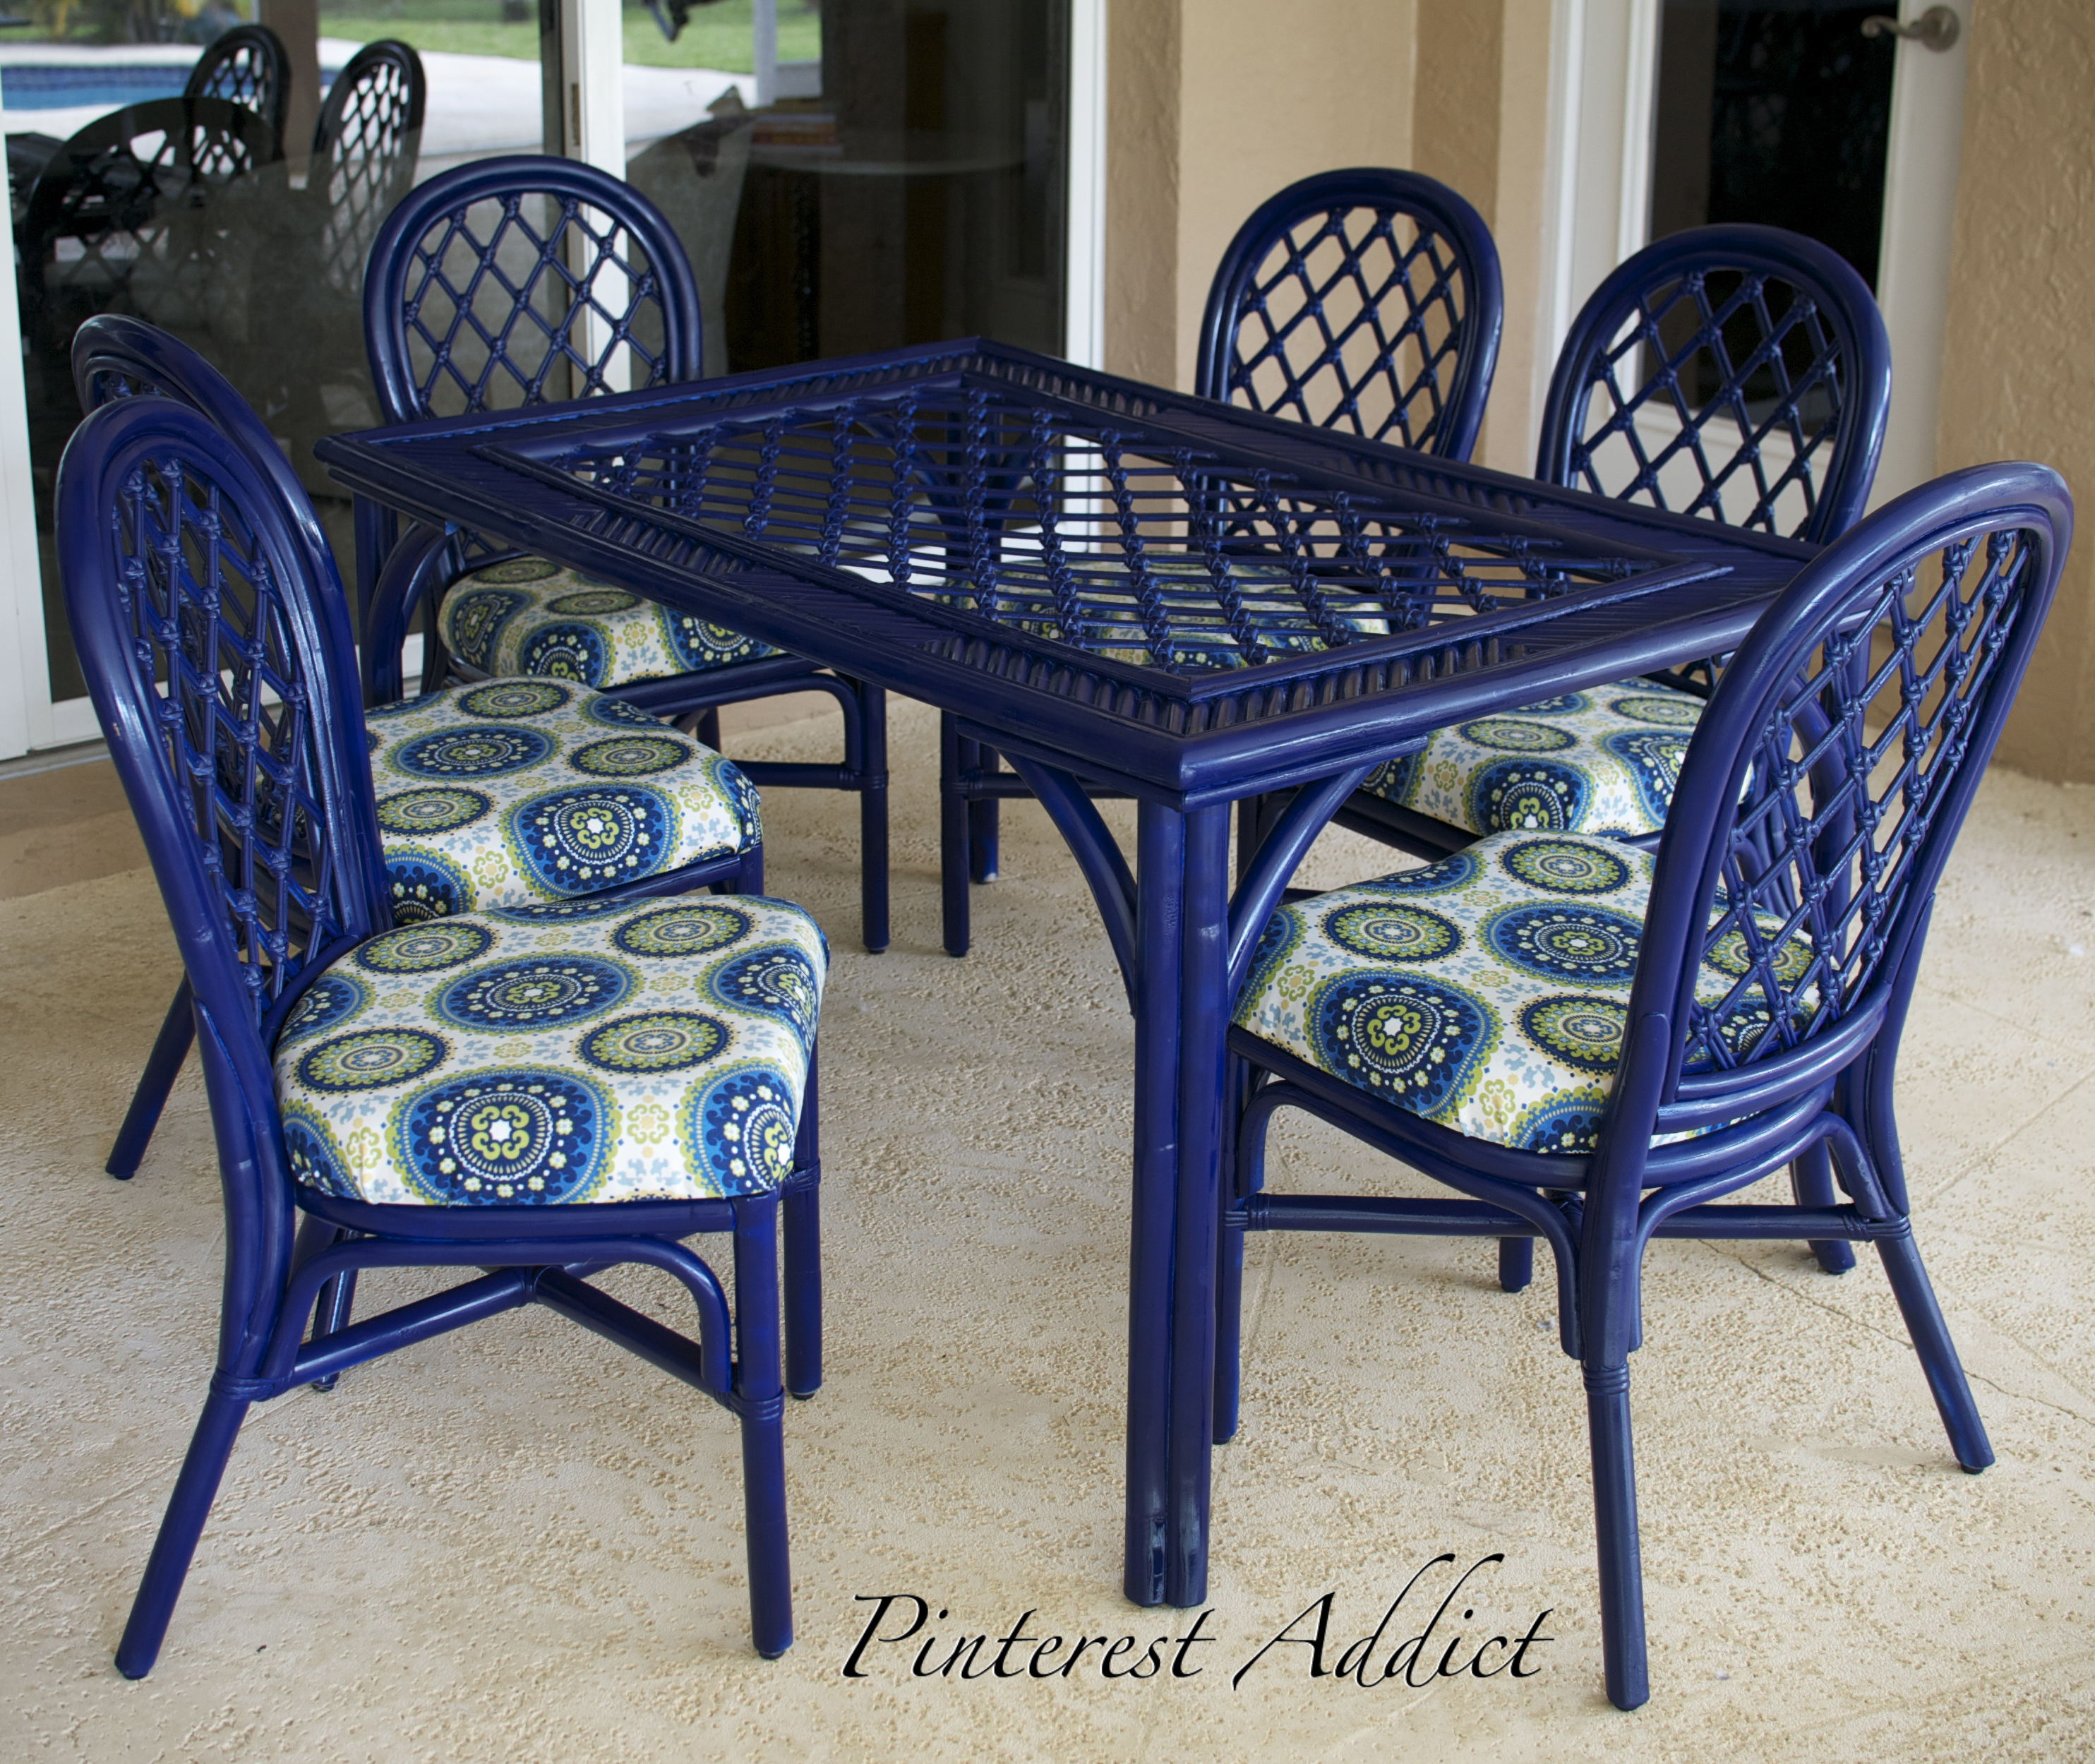 Patio Furniture Re do Pinterest Addict